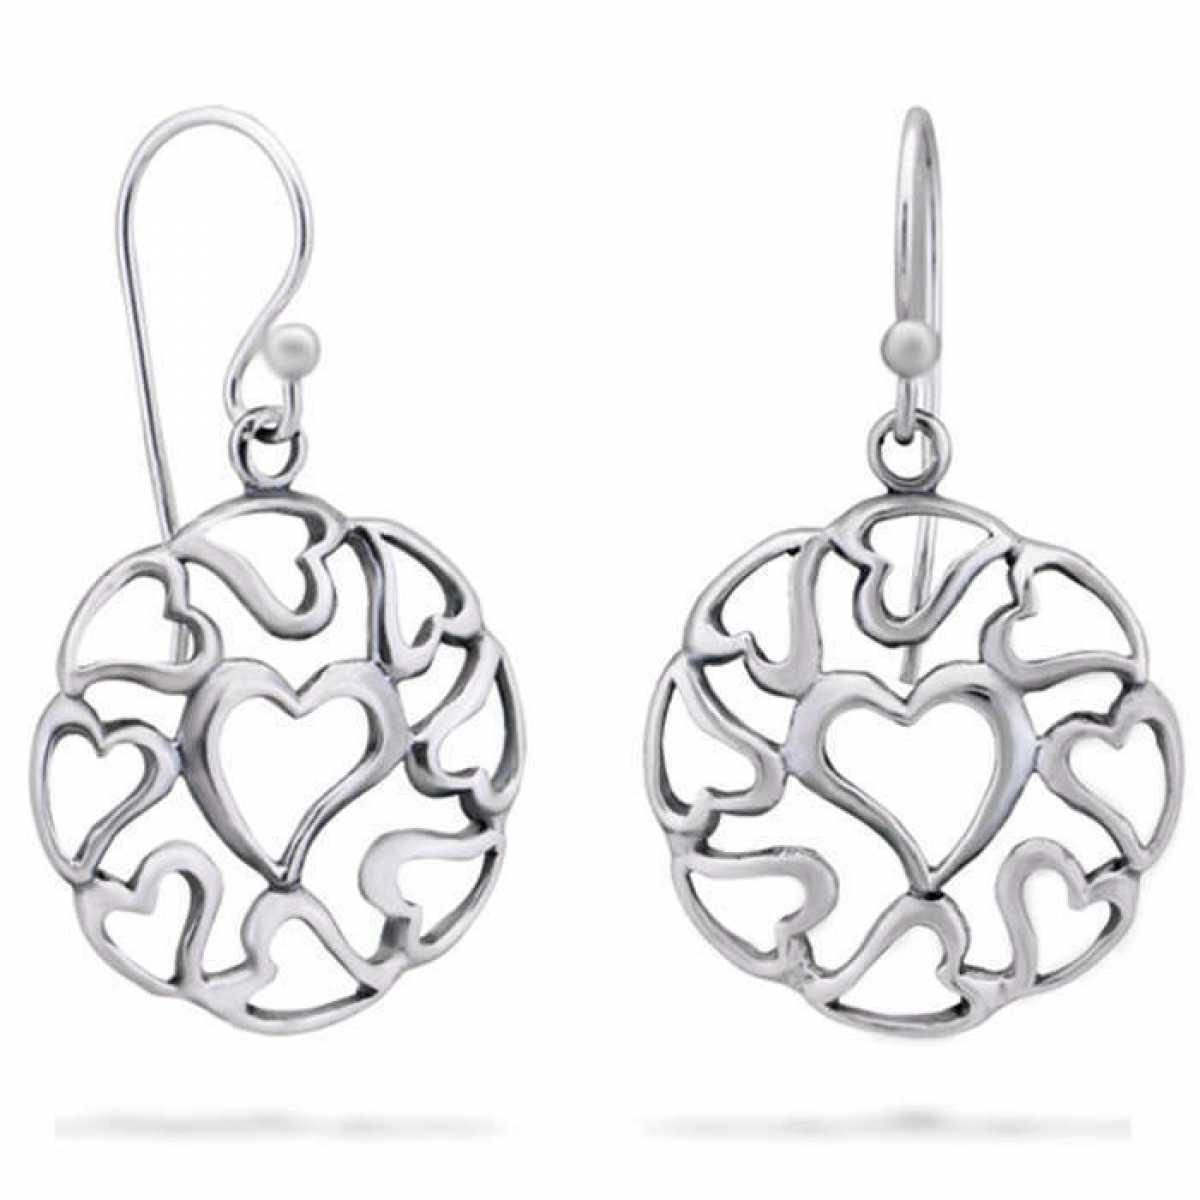 8 Patterns of Silver Earrings Online for your daily wear!